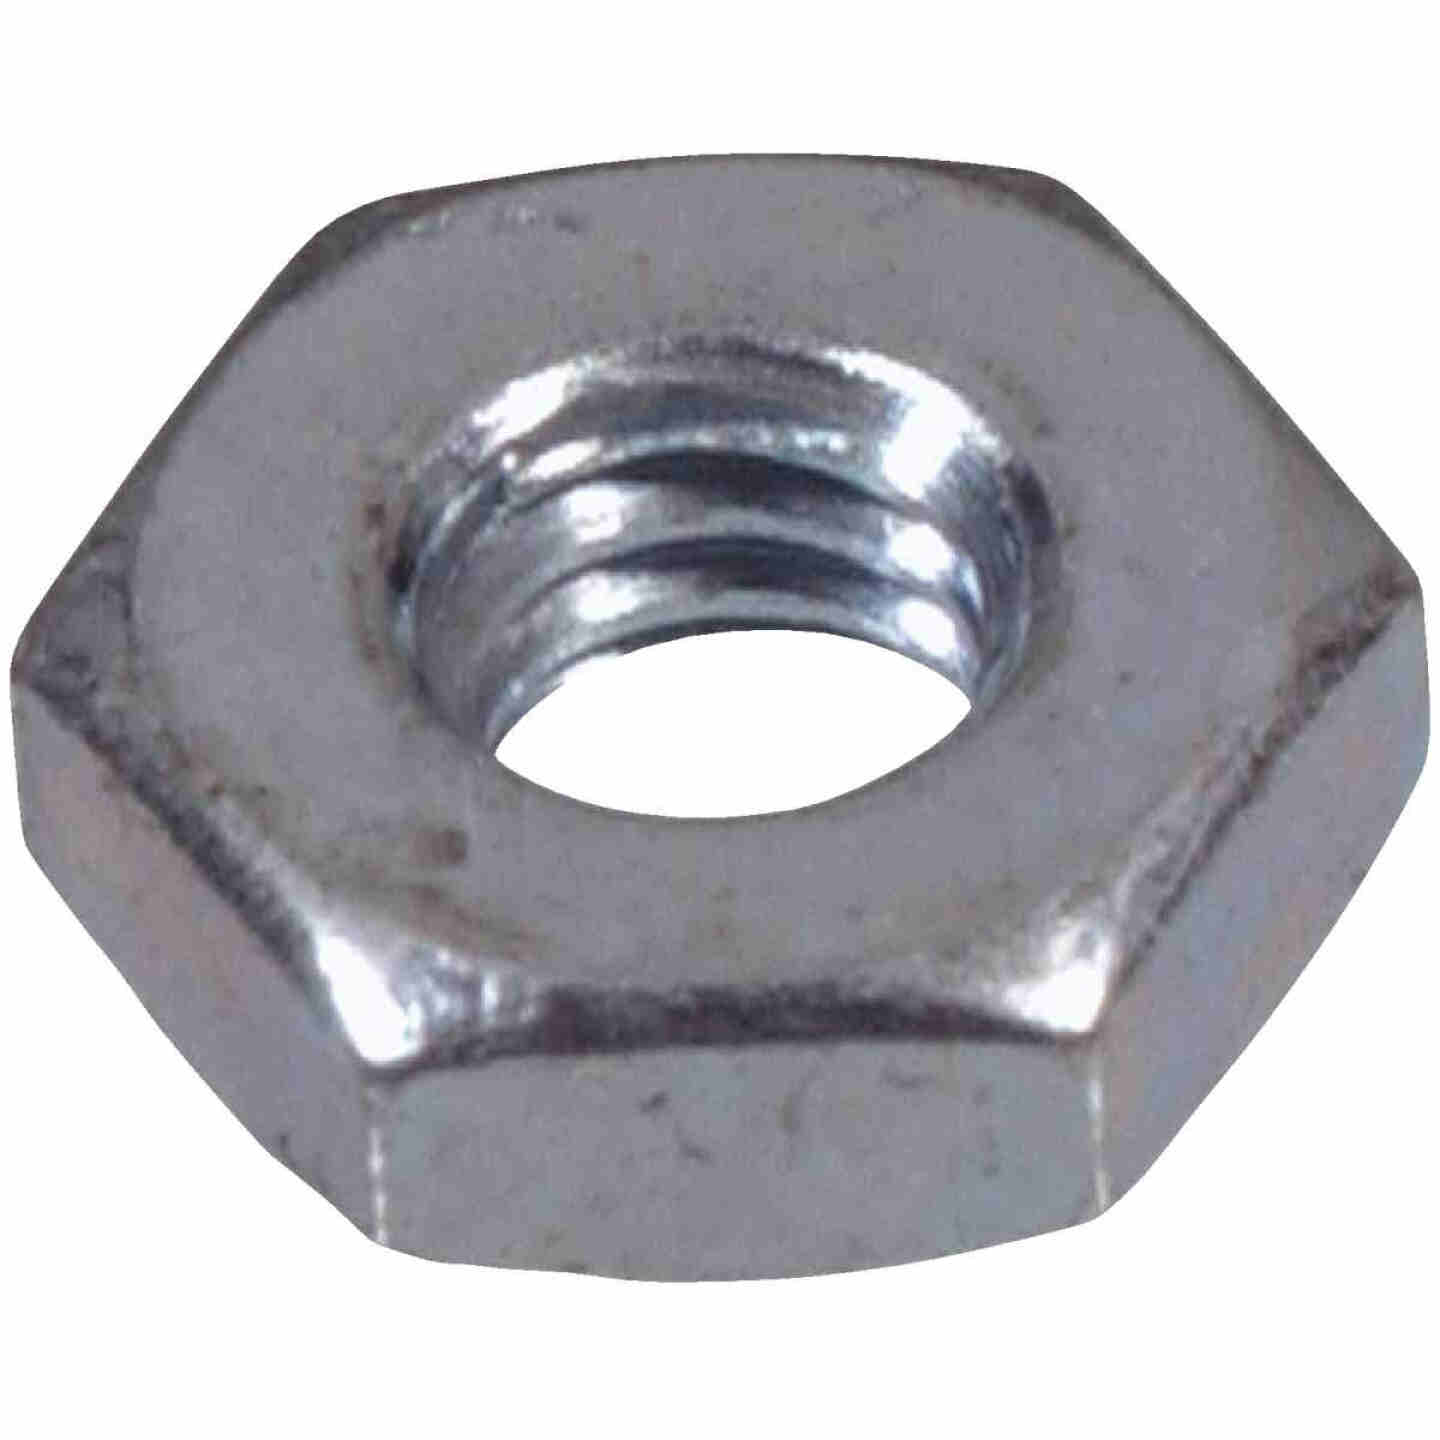 Hillman #12 24 tpi Grade 2 Zinc Hex Machine Screw Nut (100 Ct.) Image 1